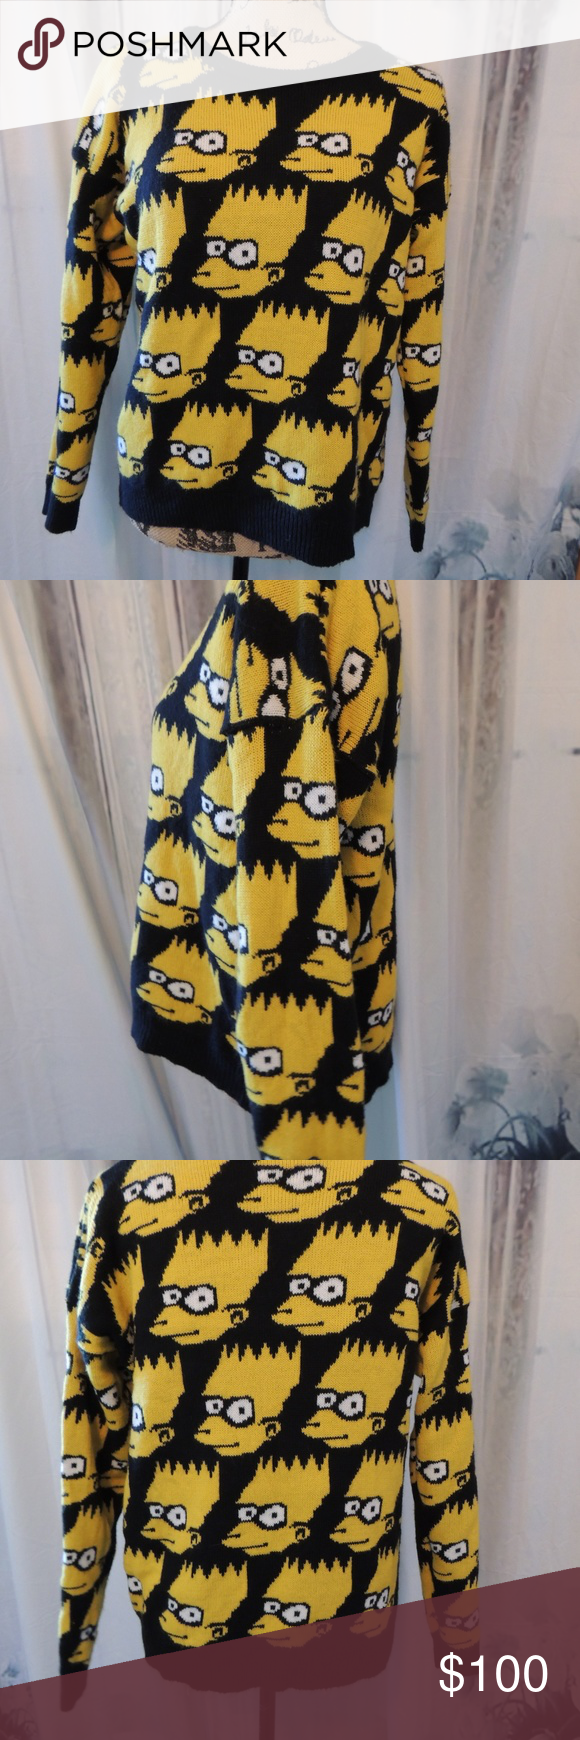 Vintage The Simpsons Bart Simpson Face Sweater Clothes Design Sweaters Vintage Sweaters [ 1740 x 580 Pixel ]